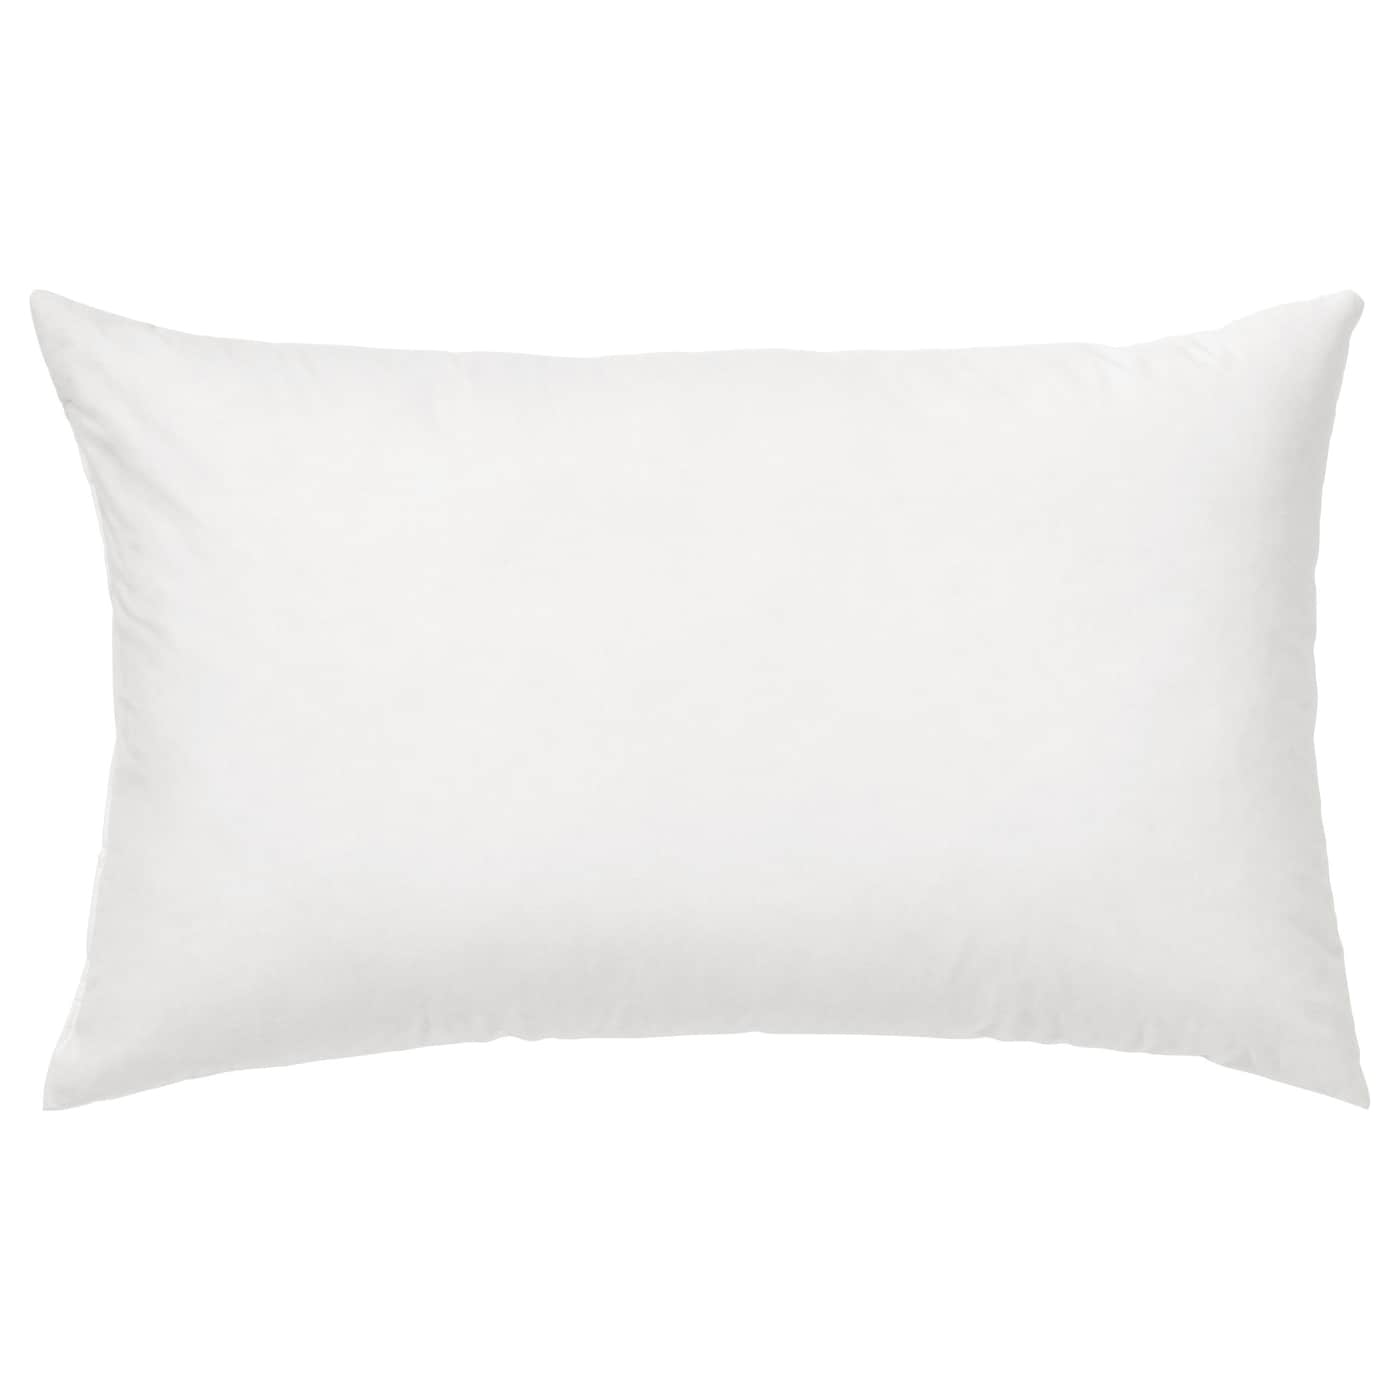 Big Pillows For Bed Uk